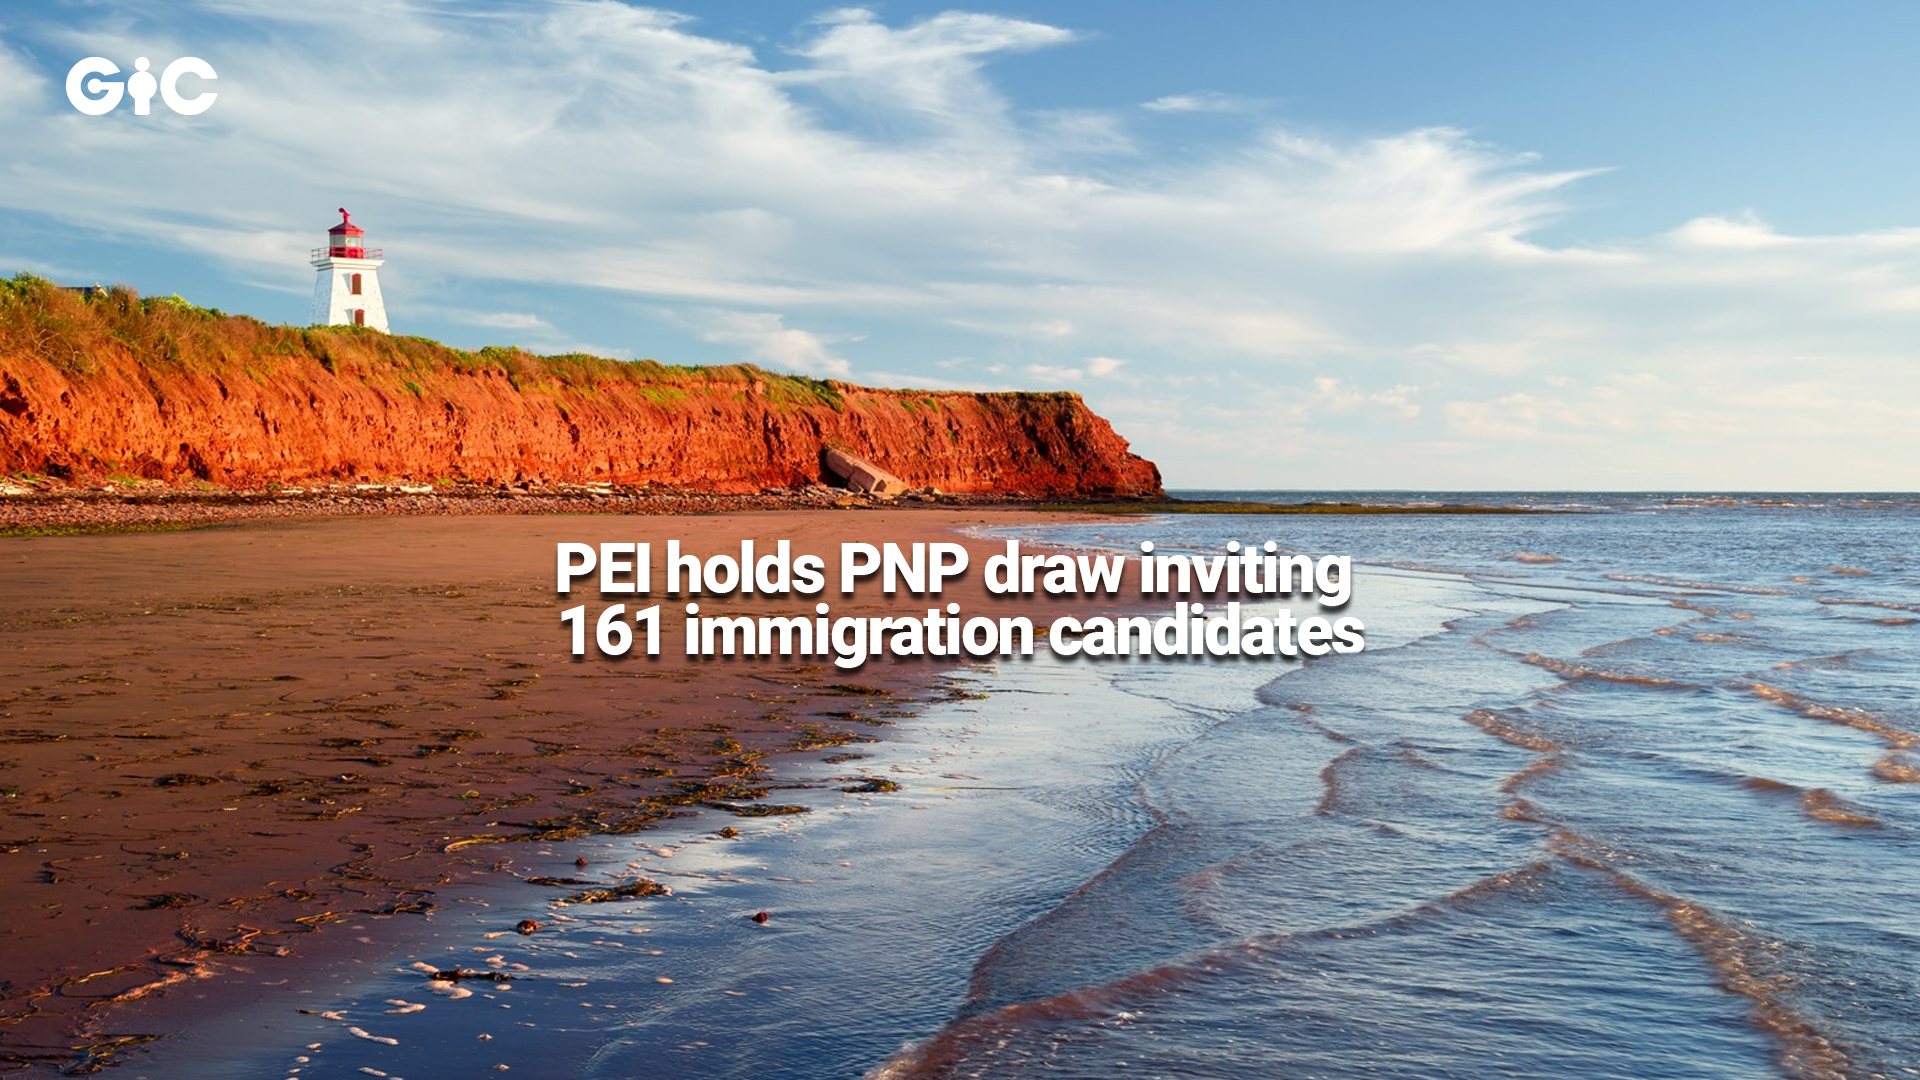 PEI holds PNP draw inviting 161 immigration candidates